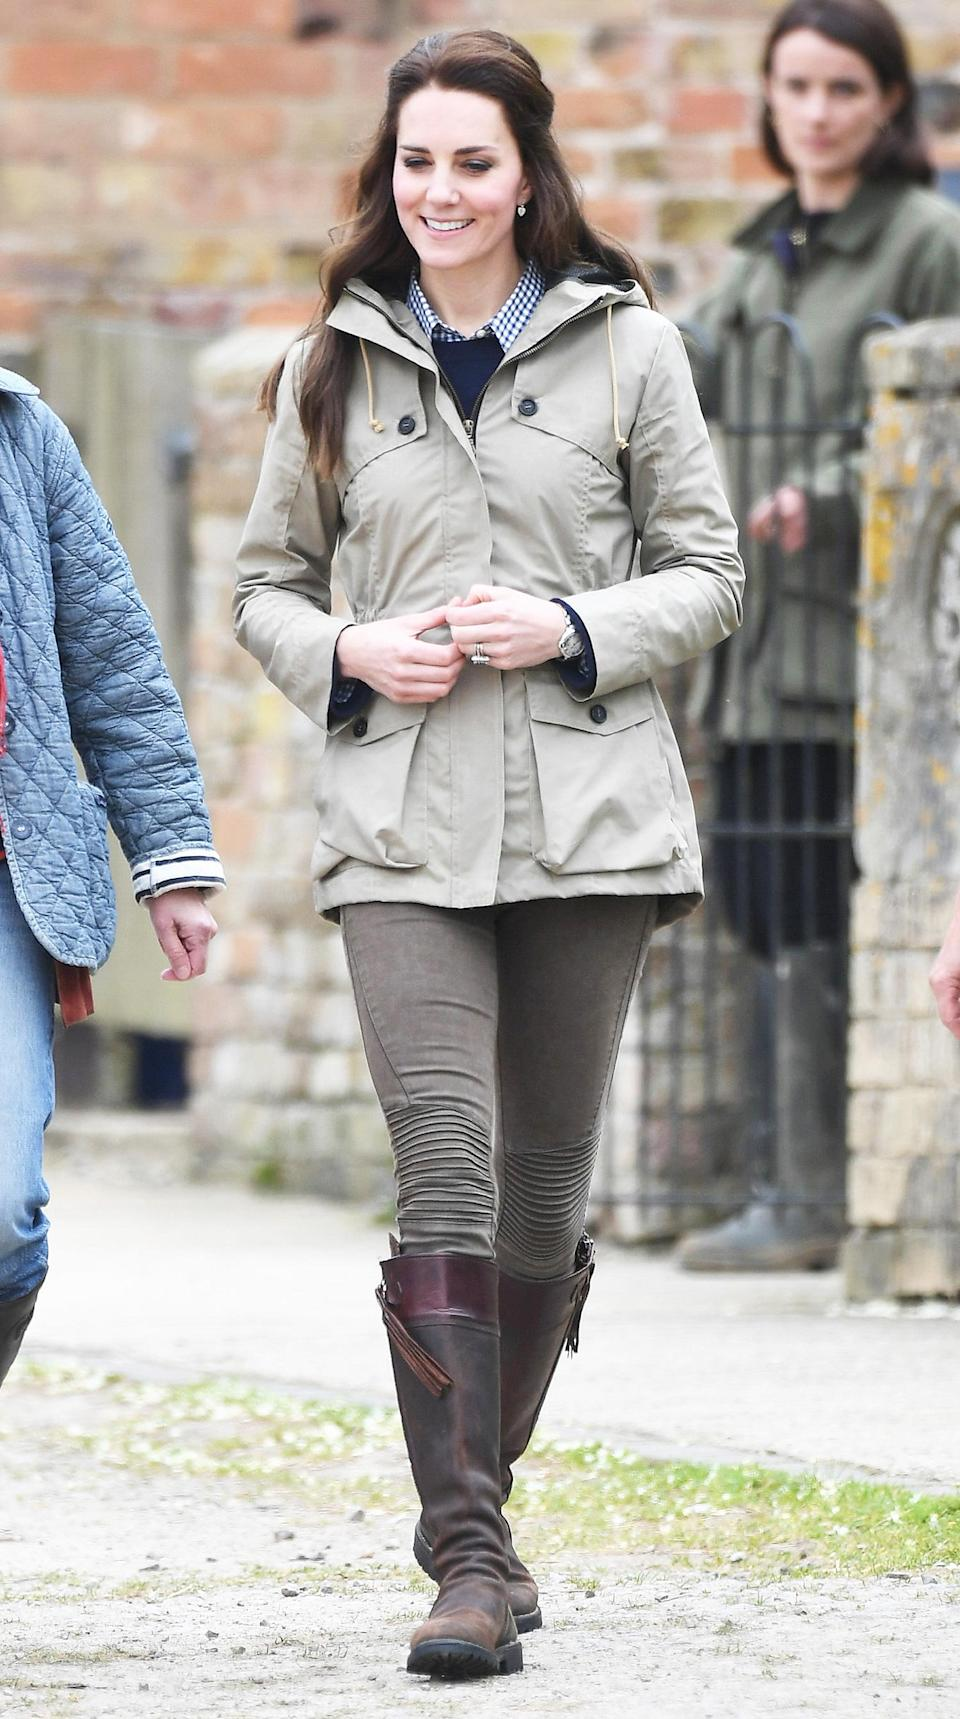 """<p><strong>When:</strong> May 3, 2017 <strong>Where:</strong> A visit to Farms for City Children in Arlingham, Gloucester, England <strong>Wearing:</strong> Troy London Wax Parka, a navy sweater, a navy checkered shirt, Penelope Chilvers Long Tassel Boots <strong>Get the Look:</strong> Guess Hooded Anorak, $110; <a href=""""https://click.linksynergy.com/fs-bin/click?id=93xLBvPhAeE&subid=0&offerid=390098.1&type=10&tmpid=8157&RD_PARM1=https%253A%252F%252Fshop.nordstrom.com%252Fs%252Fguess-hooded-anorak%252F4863274%253Forigin%253Dkeywordsearch-personalizedsort%2526fashioncolor%253DKHAKI&u1=POROYALSKateSpringStyleMM"""" rel=""""nofollow noopener"""" target=""""_blank"""" data-ylk=""""slk:nordstrom.com"""" class=""""link rapid-noclick-resp"""">nordstrom.com</a> Tippi Sweater, $80; <a href=""""https://click.linksynergy.com/fs-bin/click?id=93xLBvPhAeE&subid=0&offerid=466652.1&type=10&tmpid=13998&RD_PARM1=https%3A%2F%2Fwww.jcrew.com%2Fp%2Fwomens_category%2Fsweaters%2Fpullover%2Ftippi-sweater%2FE1277&u1=POROYALSKateSpringStyleMM"""" rel=""""nofollow noopener"""" target=""""_blank"""" data-ylk=""""slk:jcrew.com"""" class=""""link rapid-noclick-resp"""">jcrew.com</a> Gingham Classic Button-Down Shirt in Boy Fit, <a href=""""https://click.linksynergy.com/fs-bin/click?id=93xLBvPhAeE&subid=0&offerid=466652.1&type=10&tmpid=13998&RD_PARM1=https%3A%2F%2Ffactory.jcrew.com%2Fp%2Fwomens-clothing%2Fshirts_tops%2Fwashed_shirts%2Fgingham-classic-buttondown-shirt-in-boy-fit%2FB9491&u1=POROYALSKateSpringStyleMM"""" rel=""""nofollow noopener"""" target=""""_blank"""" data-ylk=""""slk:jcrewfactory.com"""" class=""""link rapid-noclick-resp"""">jcrewfactory.com</a> Penelope Chilvers Long Tassel Boots, $602; <a href=""""http://www.penelopechilvers.com/boots/kate-middleton-long-tassel-boots/dp-1770/long-tassel-boot"""" rel=""""nofollow noopener"""" target=""""_blank"""" data-ylk=""""slk:penelopechilvers.com"""" class=""""link rapid-noclick-resp"""">penelopechilvers.com</a> Lauren Ralph Lauren Marsalis Tassel Leather Knee-High Riding Boots, $106 - $159; <a href=""""https://www.amazon.com/Lauren-Ralph-Womens-Marsalis-R"""